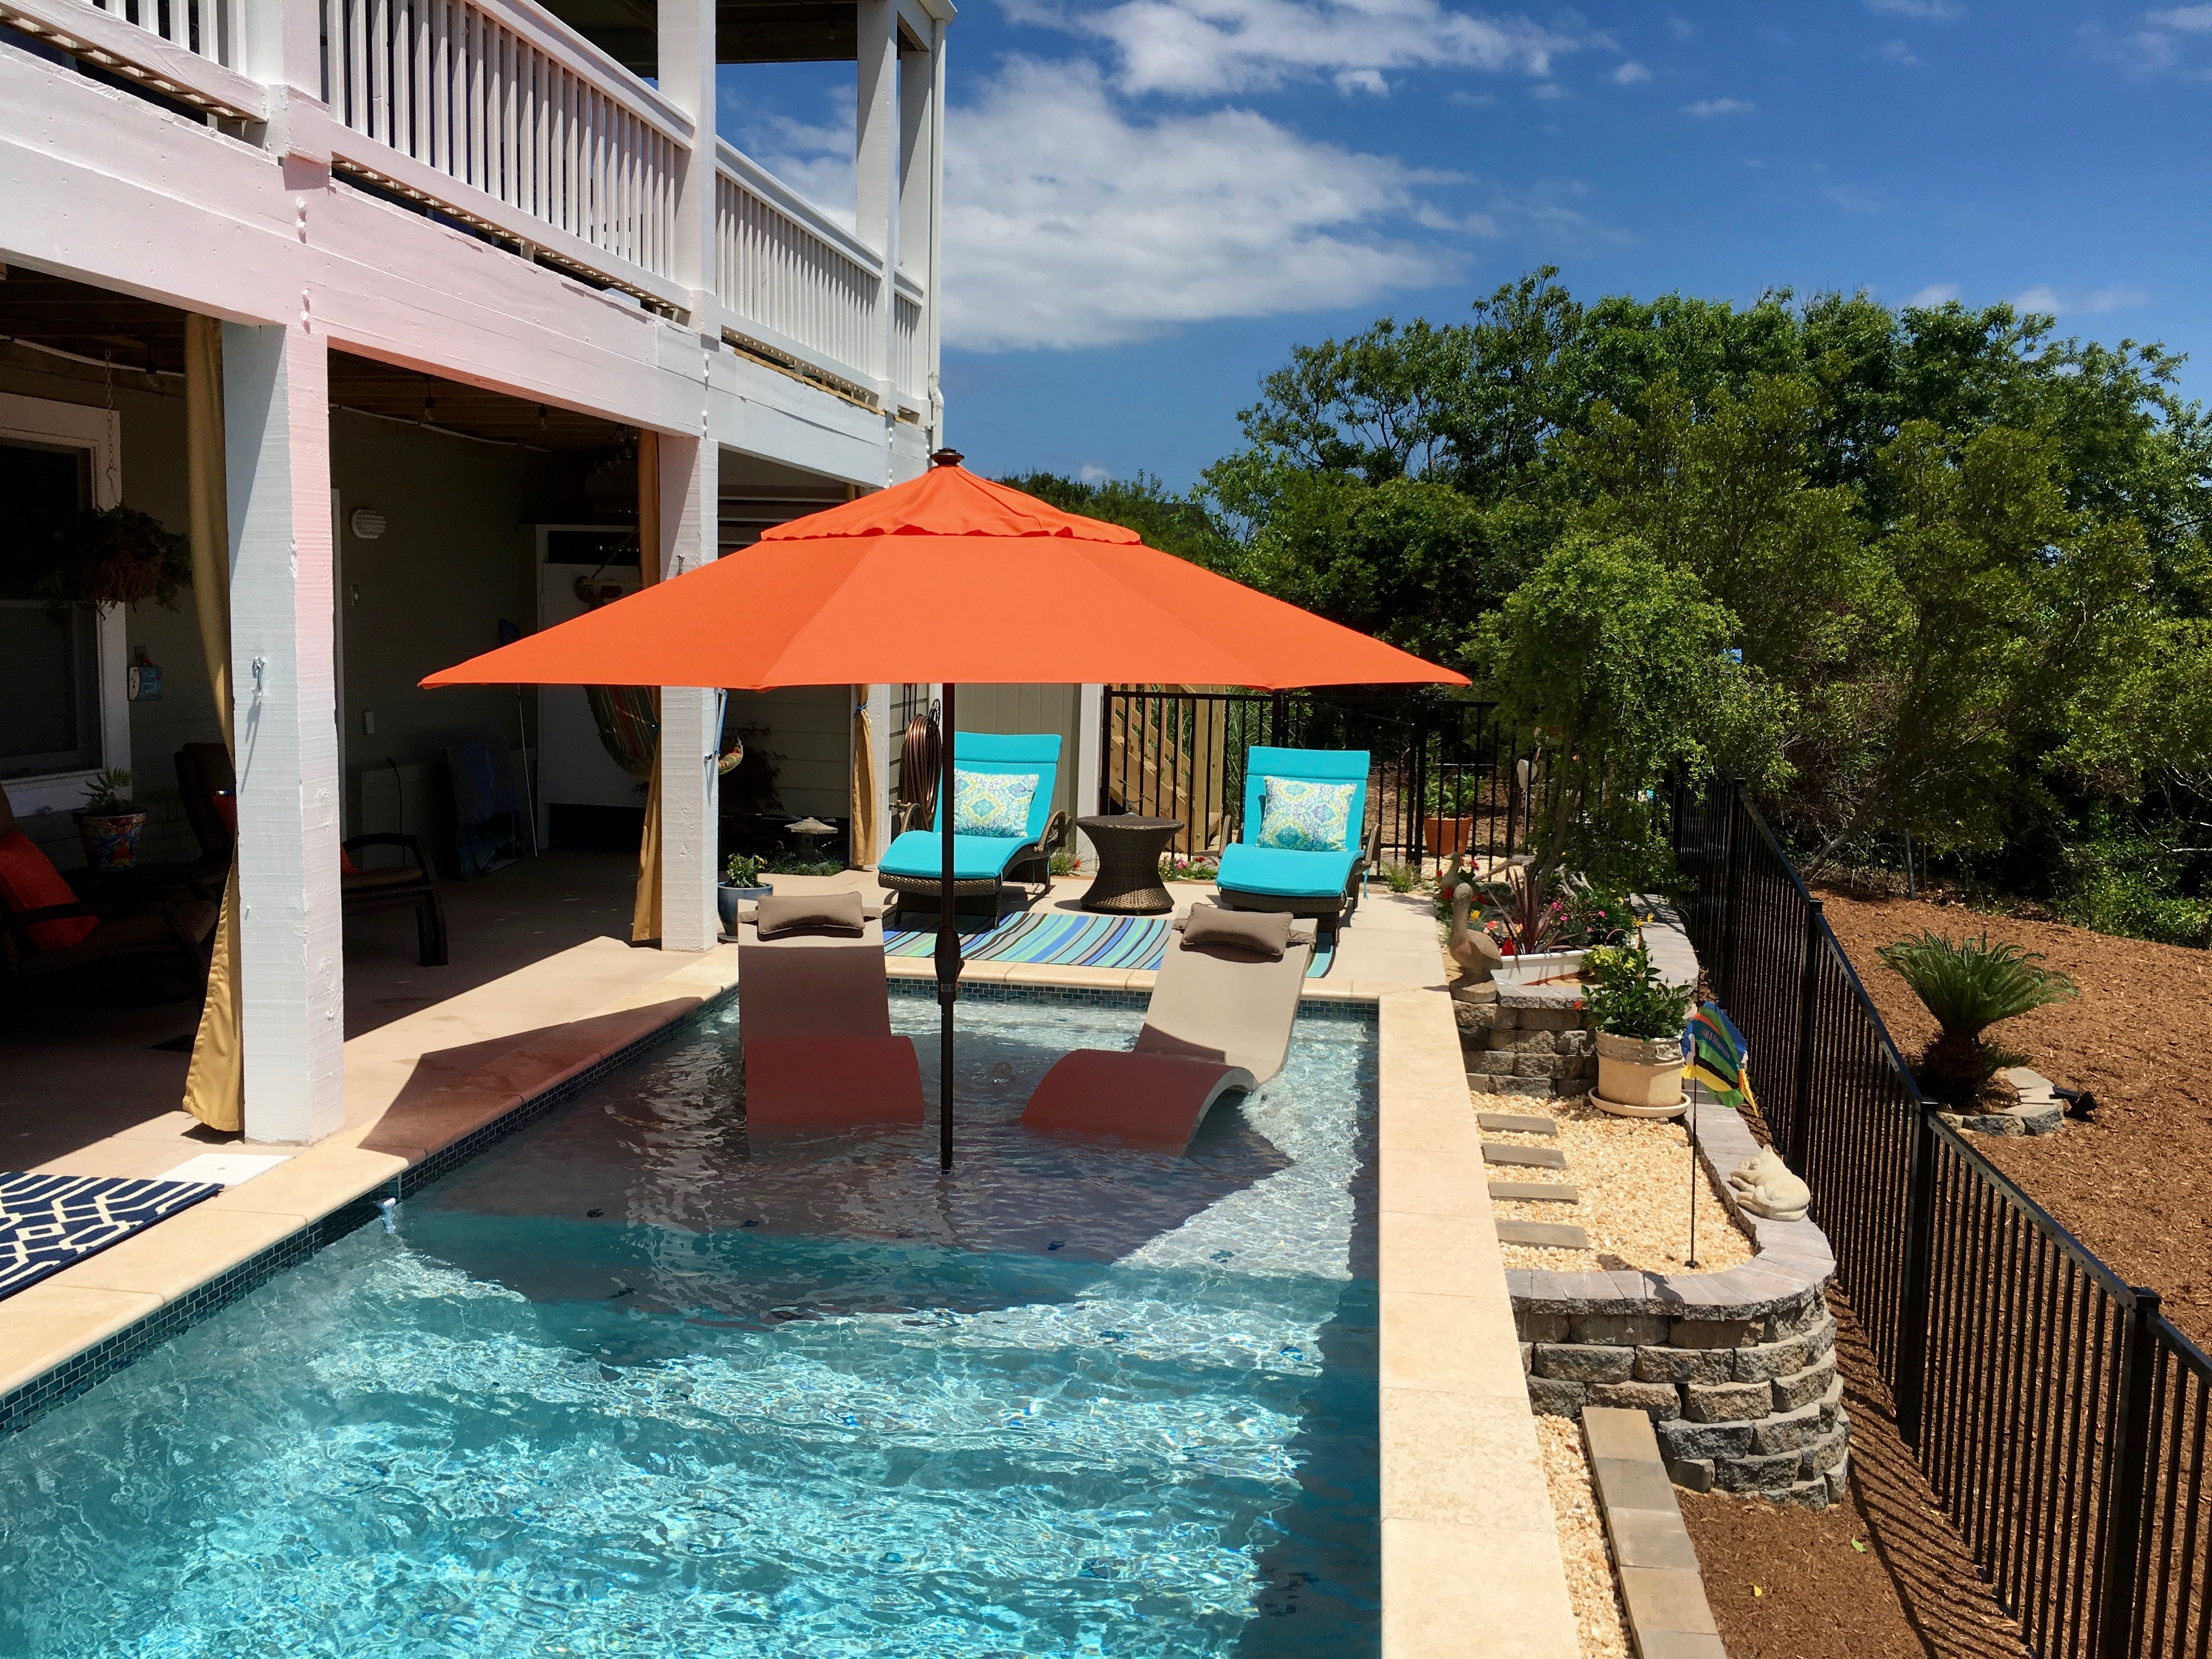 Nags Head Concrete Pool Tanning Ledge by Caribbean Pools